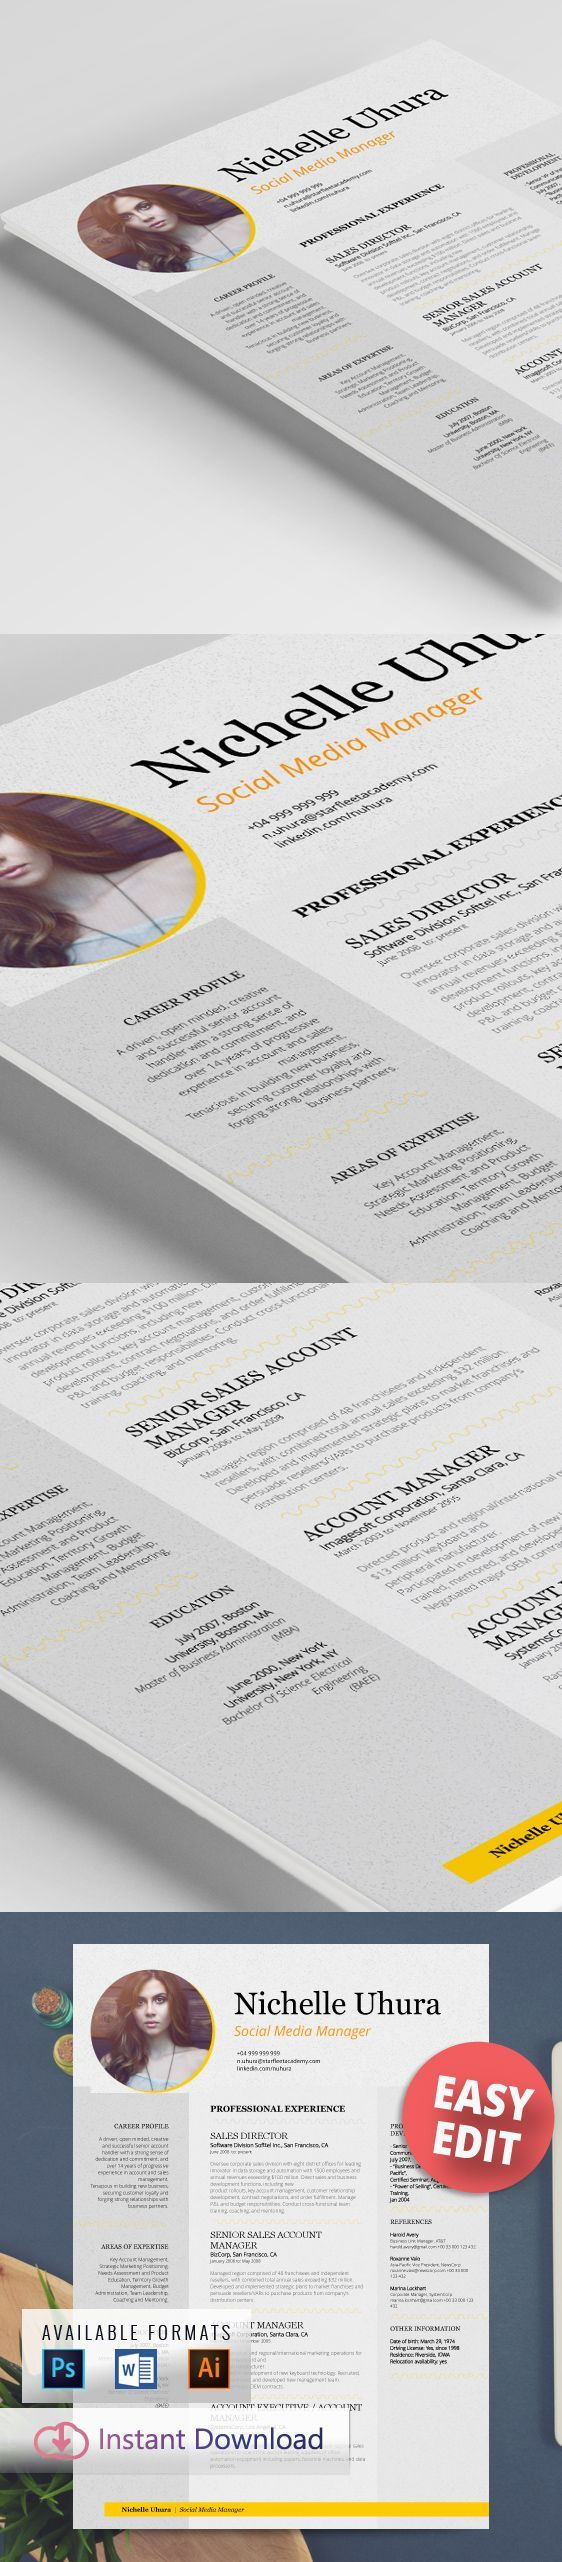 generic objectives for resumes%0A A jazzed up resume design I actually like